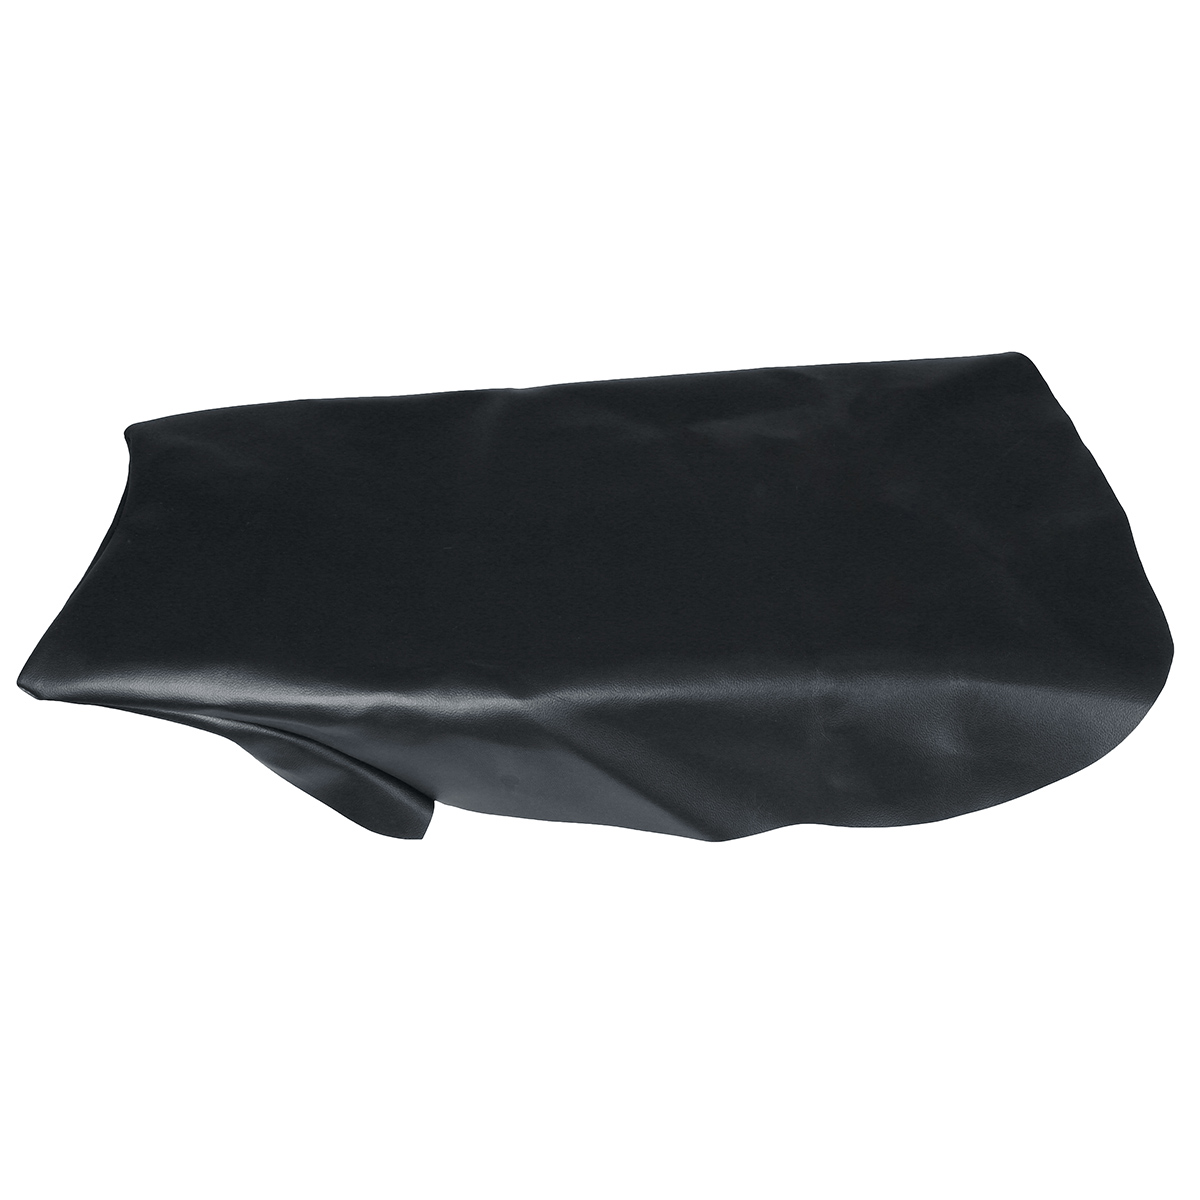 Motorcycle ATV Seat Cover For Honda Recon 250 1998-2004